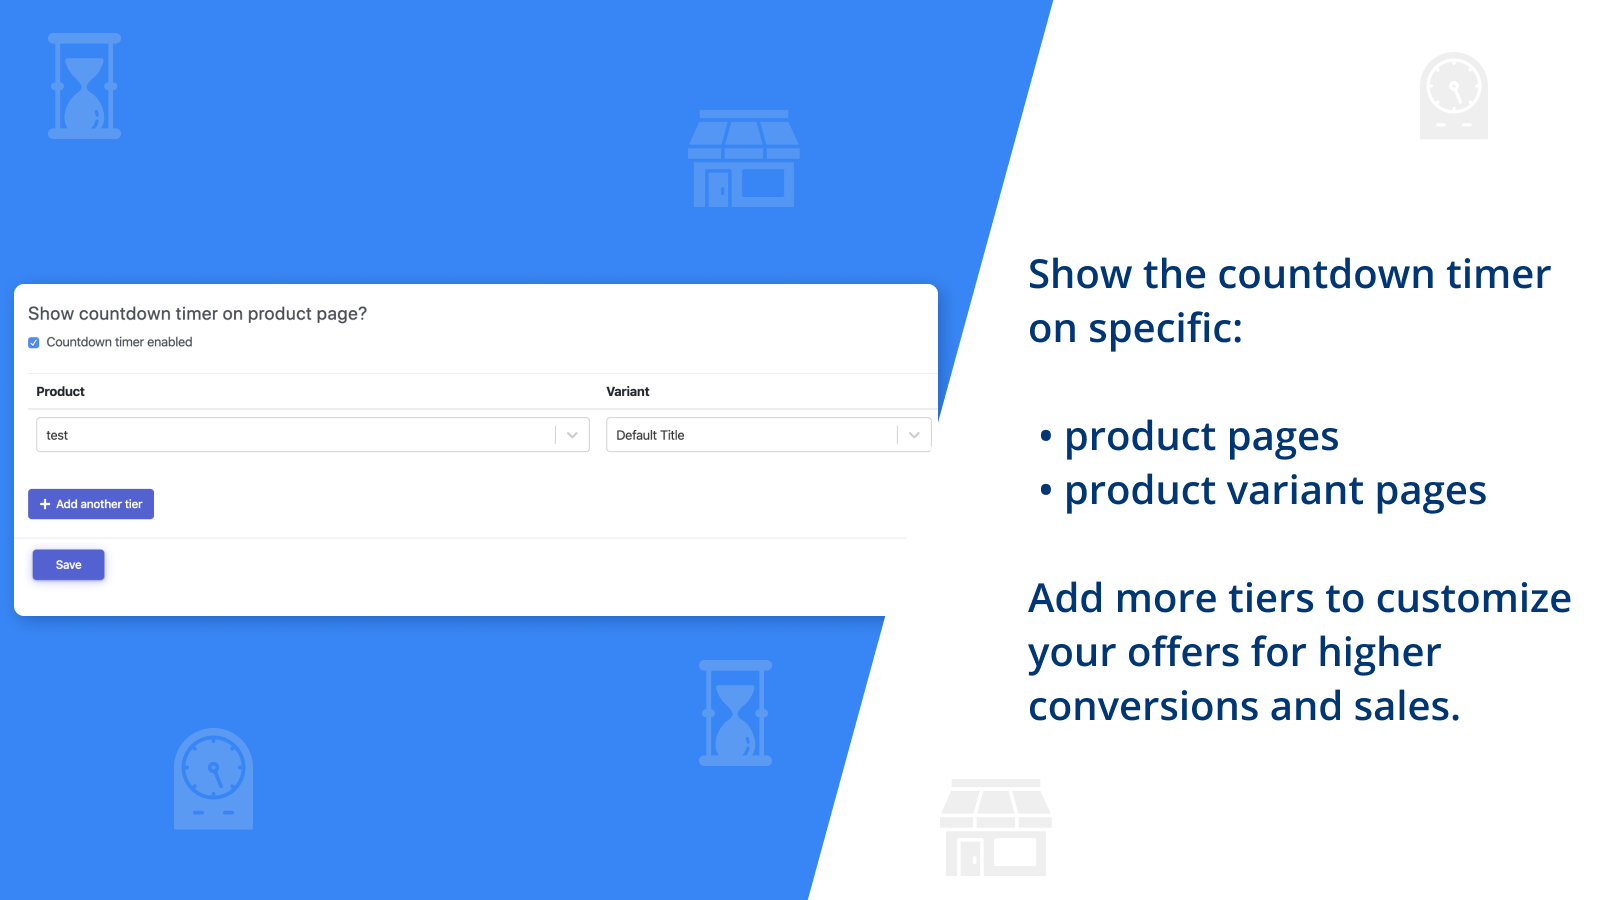 Choose the product page or product variant for countdown timer